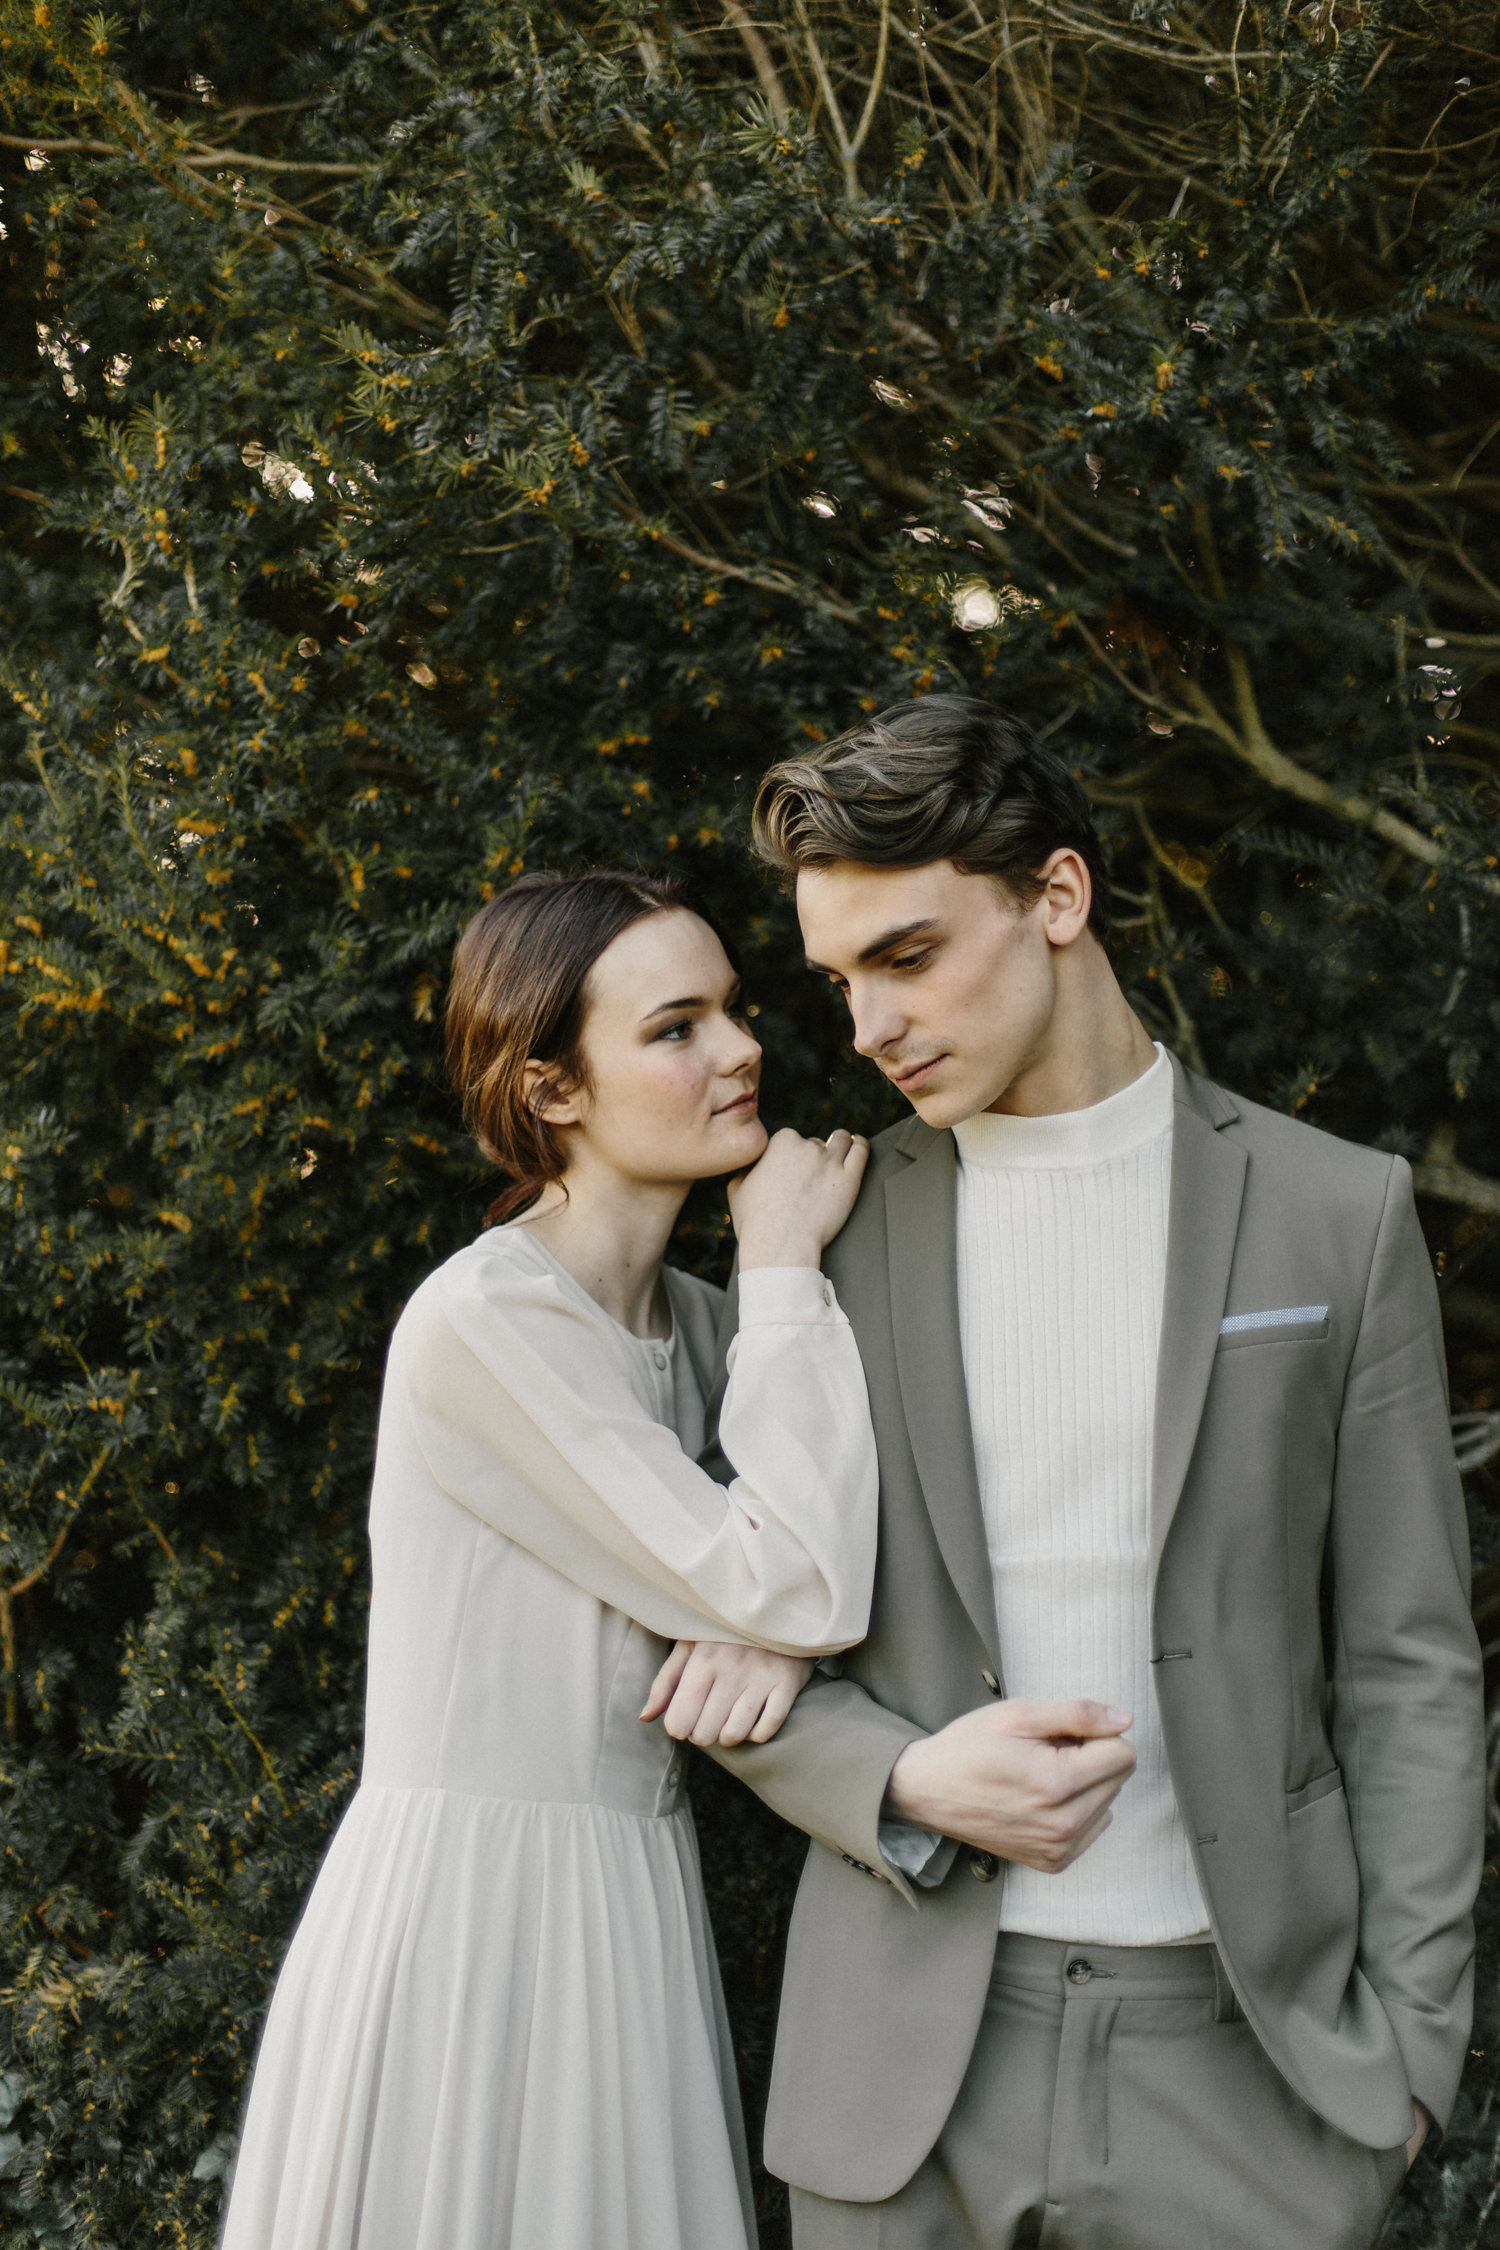 nonsuchmansion-oncewed-magnoliarouge-wedhead-hire